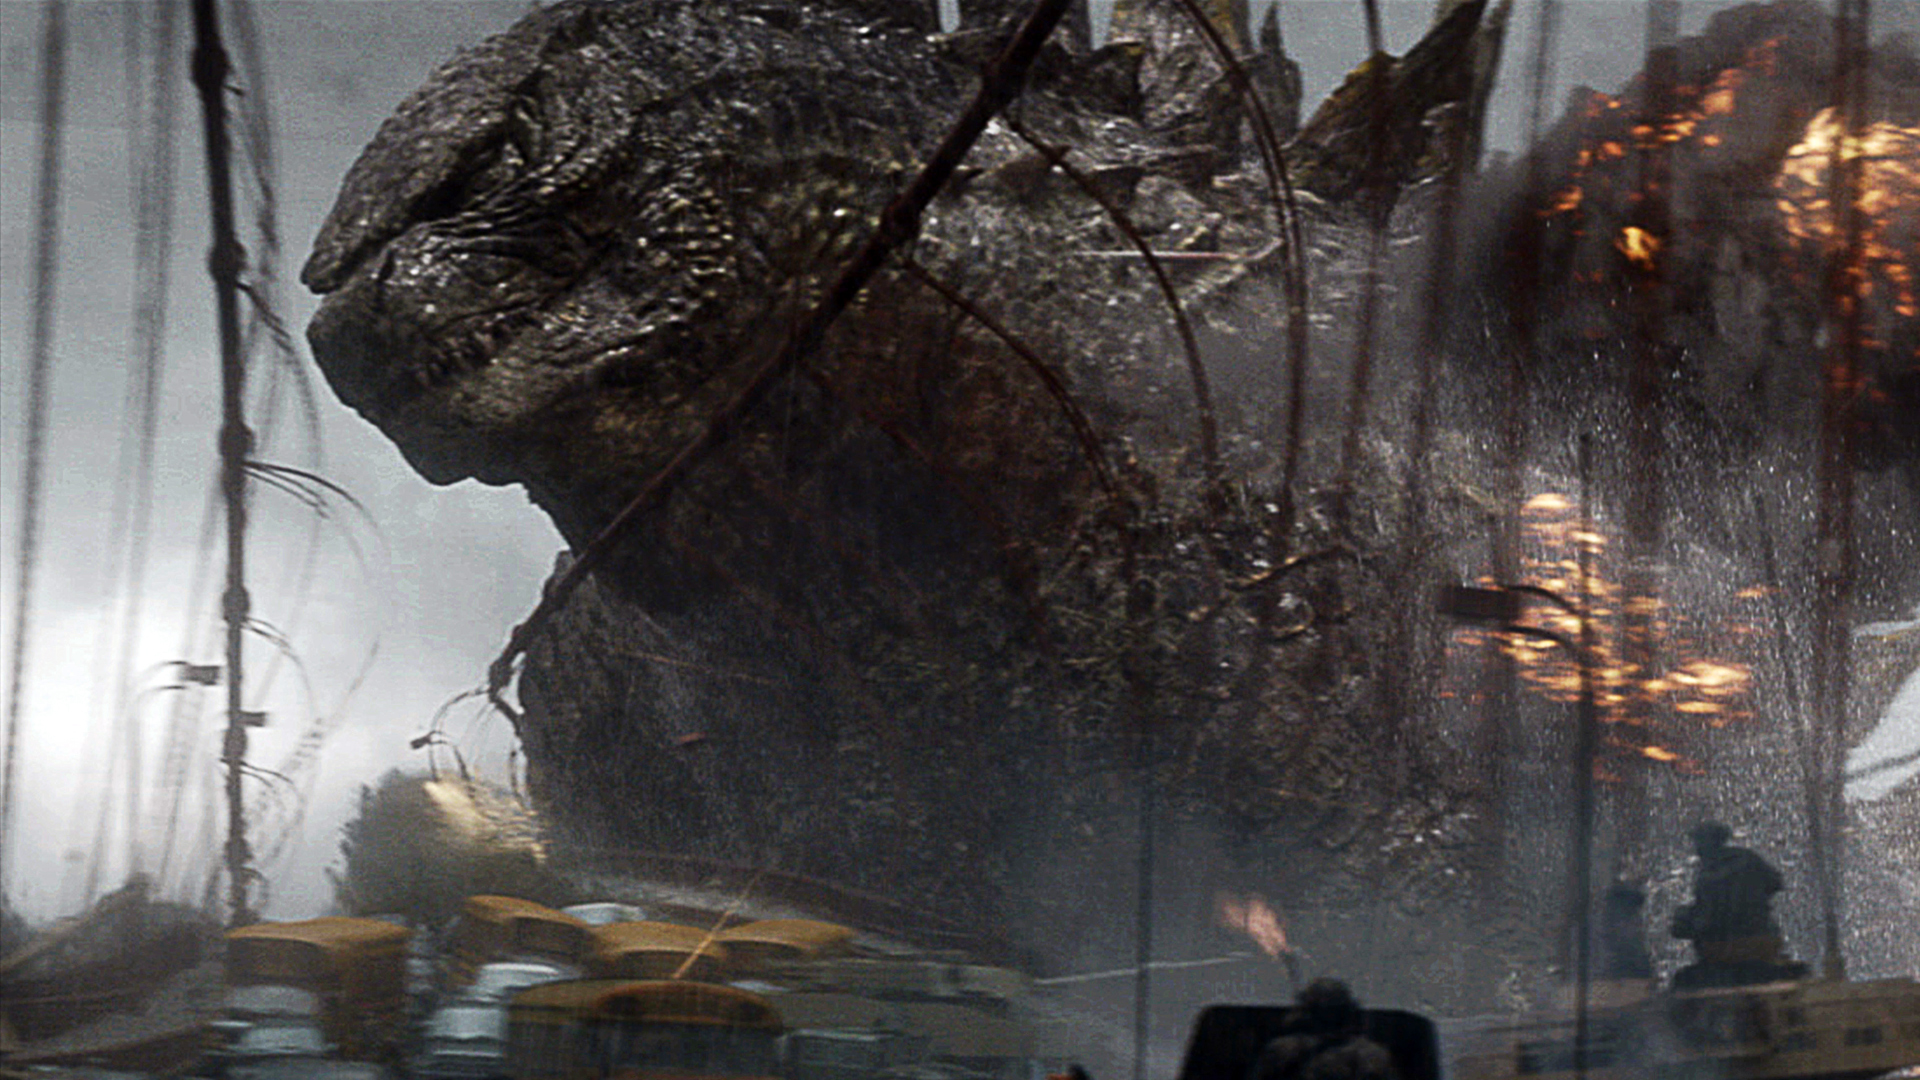 godzilla 2014 movie image hd 1920x1080 1080p wallpaper and compatible 1920x1080